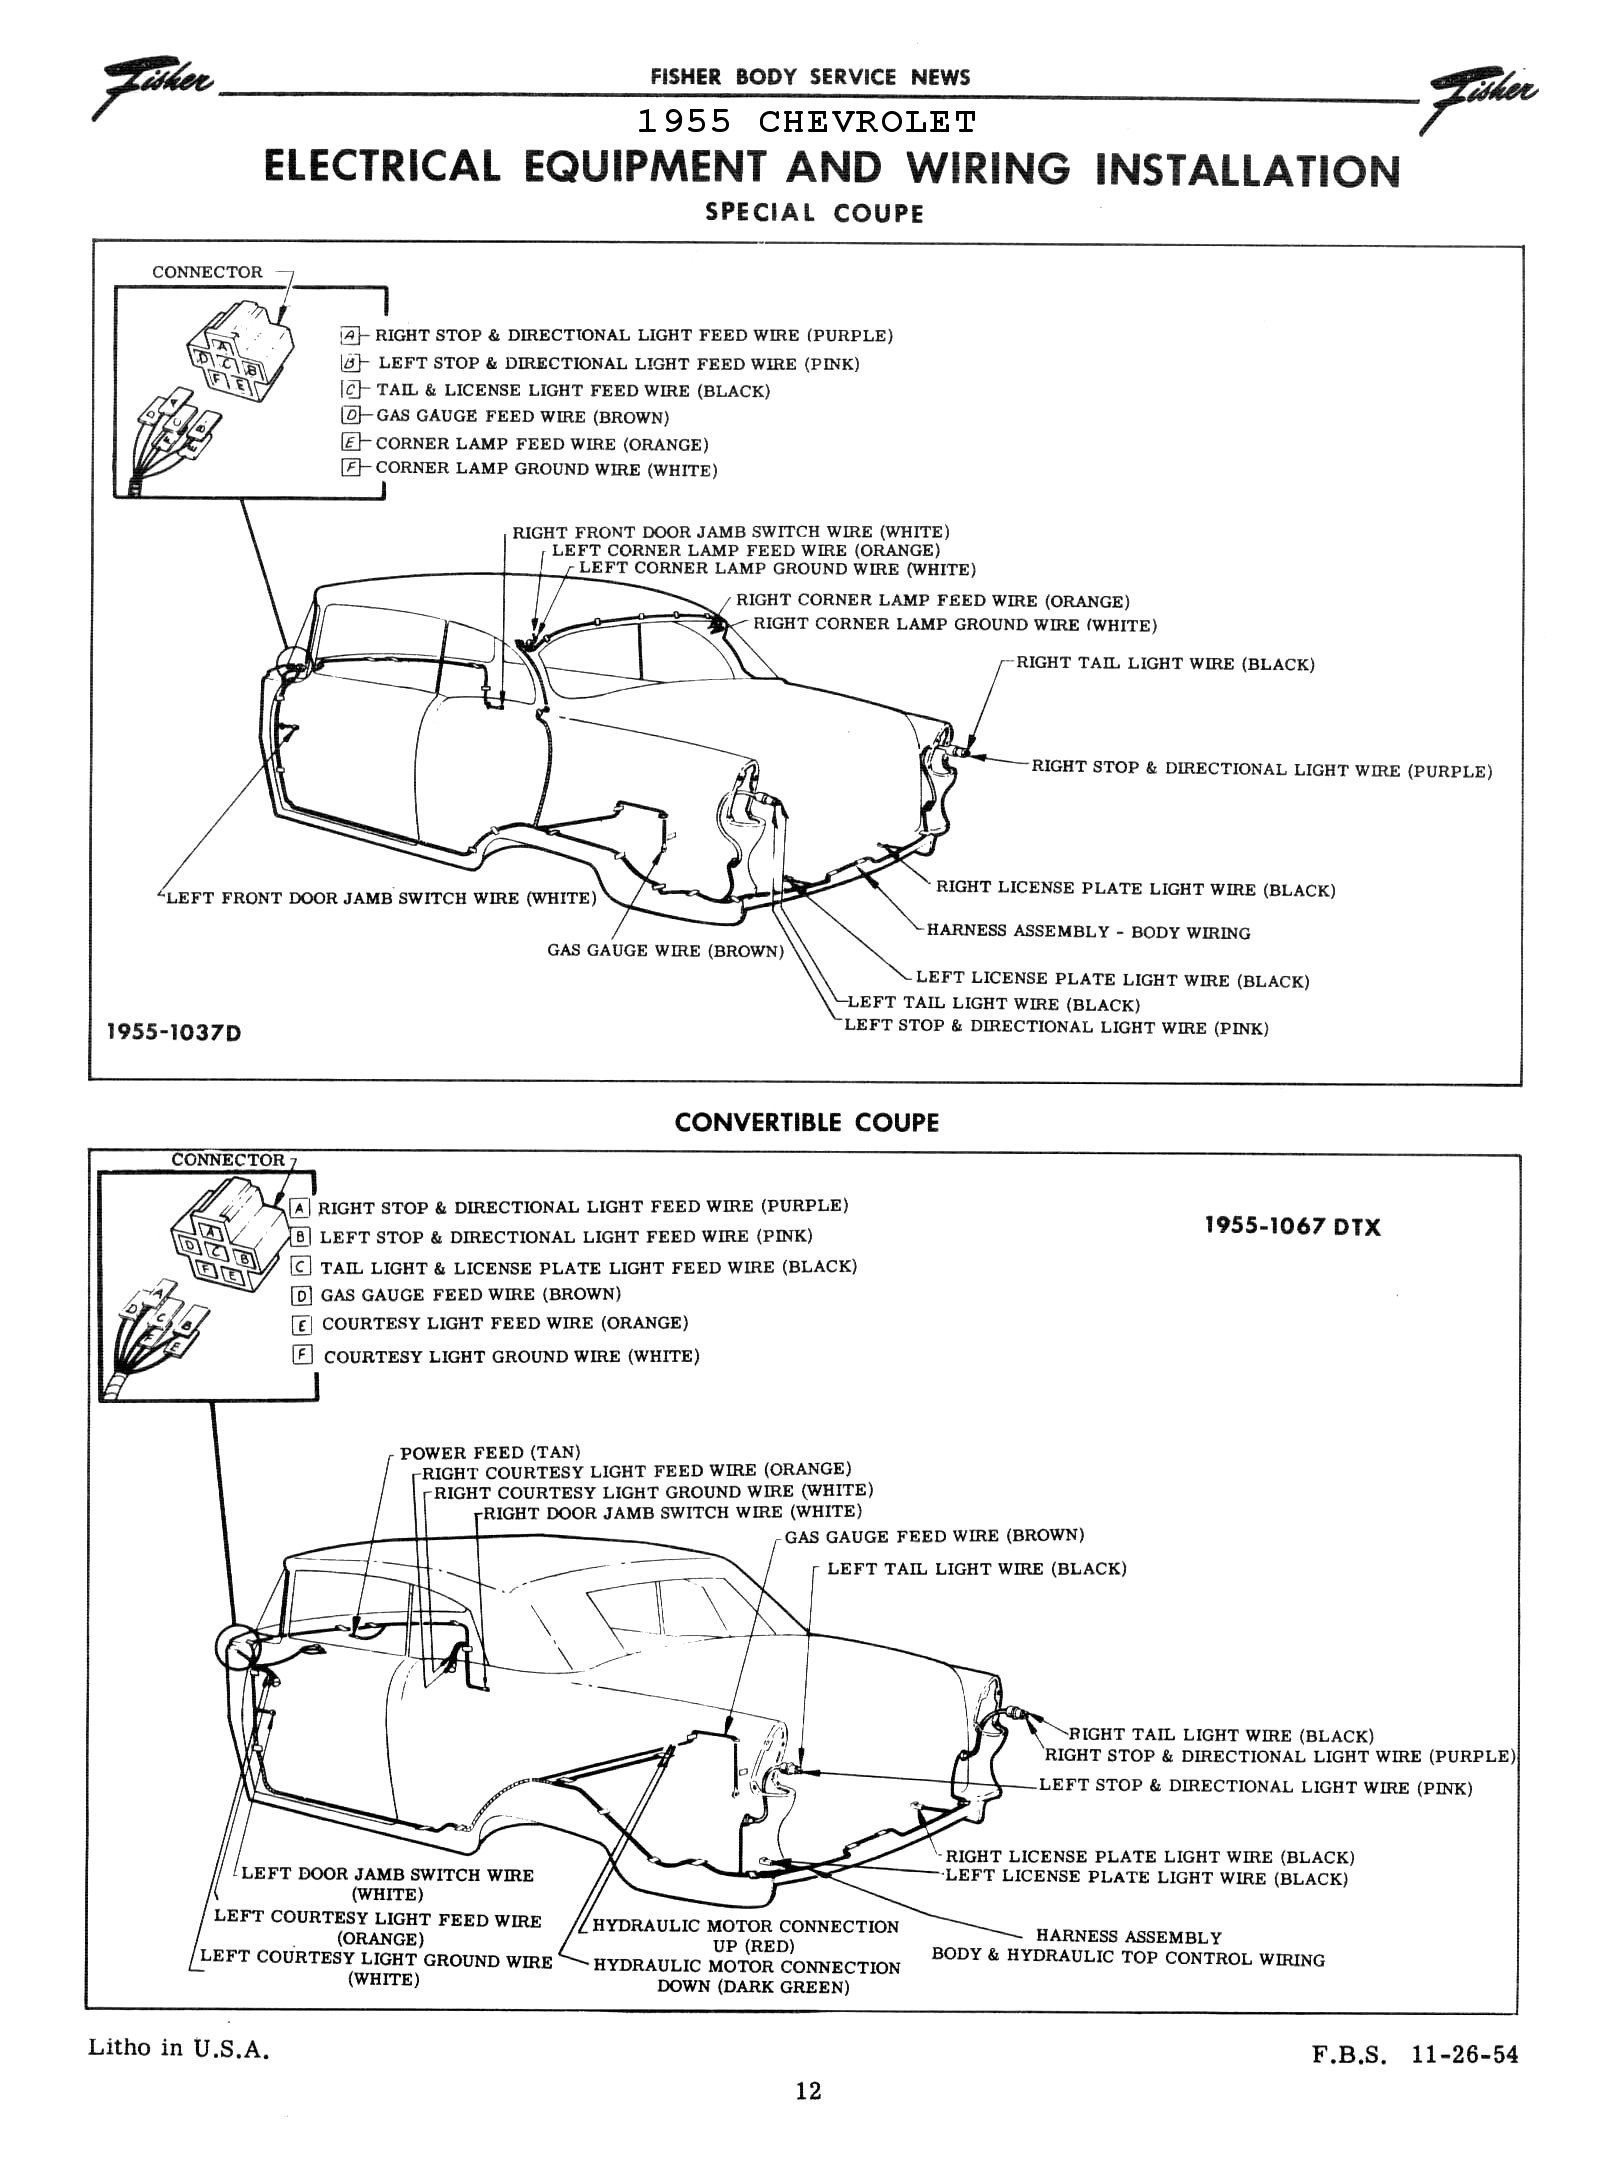 55fsn140612 chevy wiring diagrams 1956 Chevy Convertible at crackthecode.co